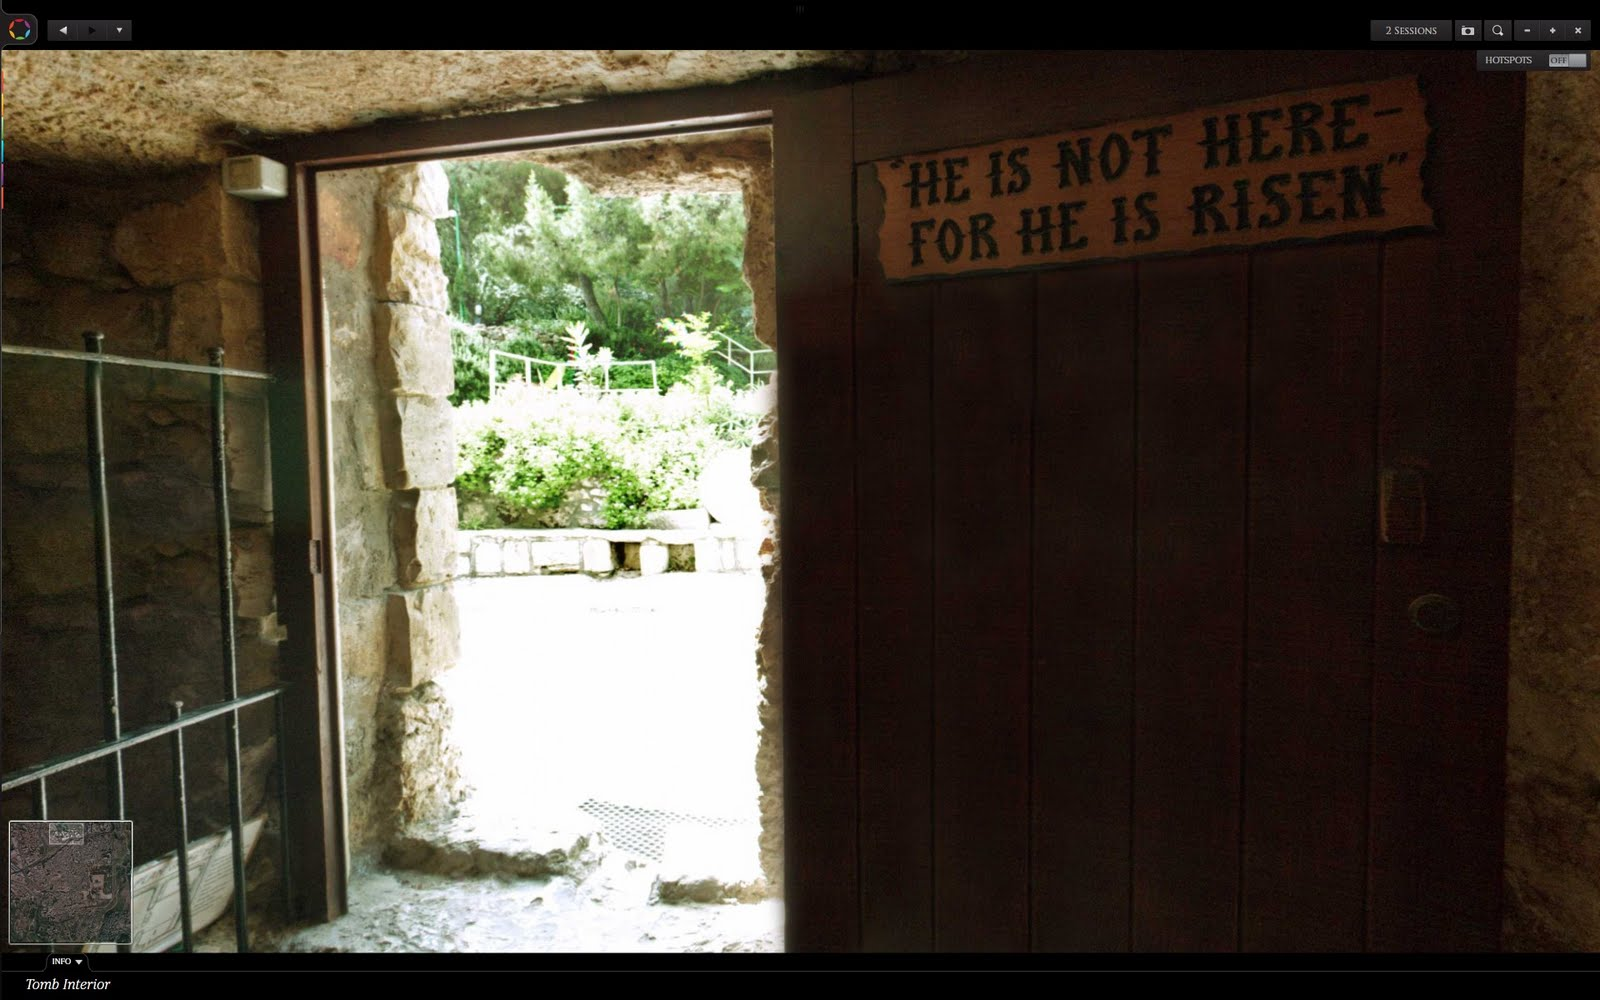 He is not here - tomb sign